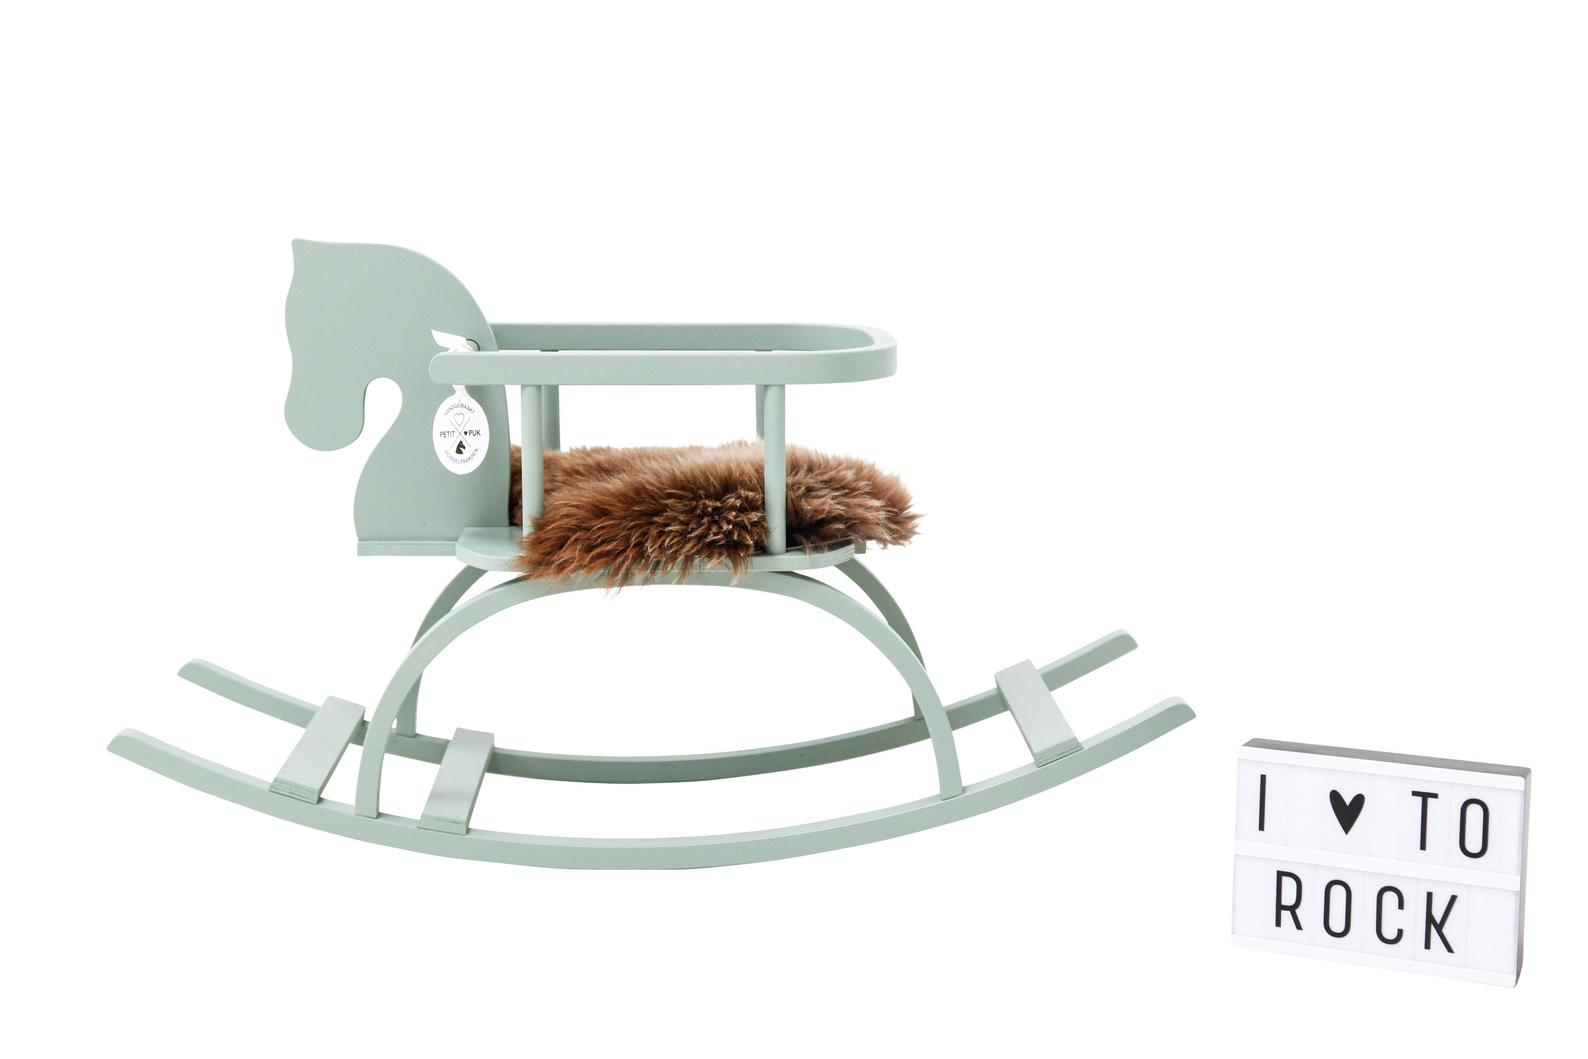 Top 10 holiday gifts for babies and toddlers: Handmade Vintage Style Rocking Horse | Small Business Holiday Gift Guide 2020